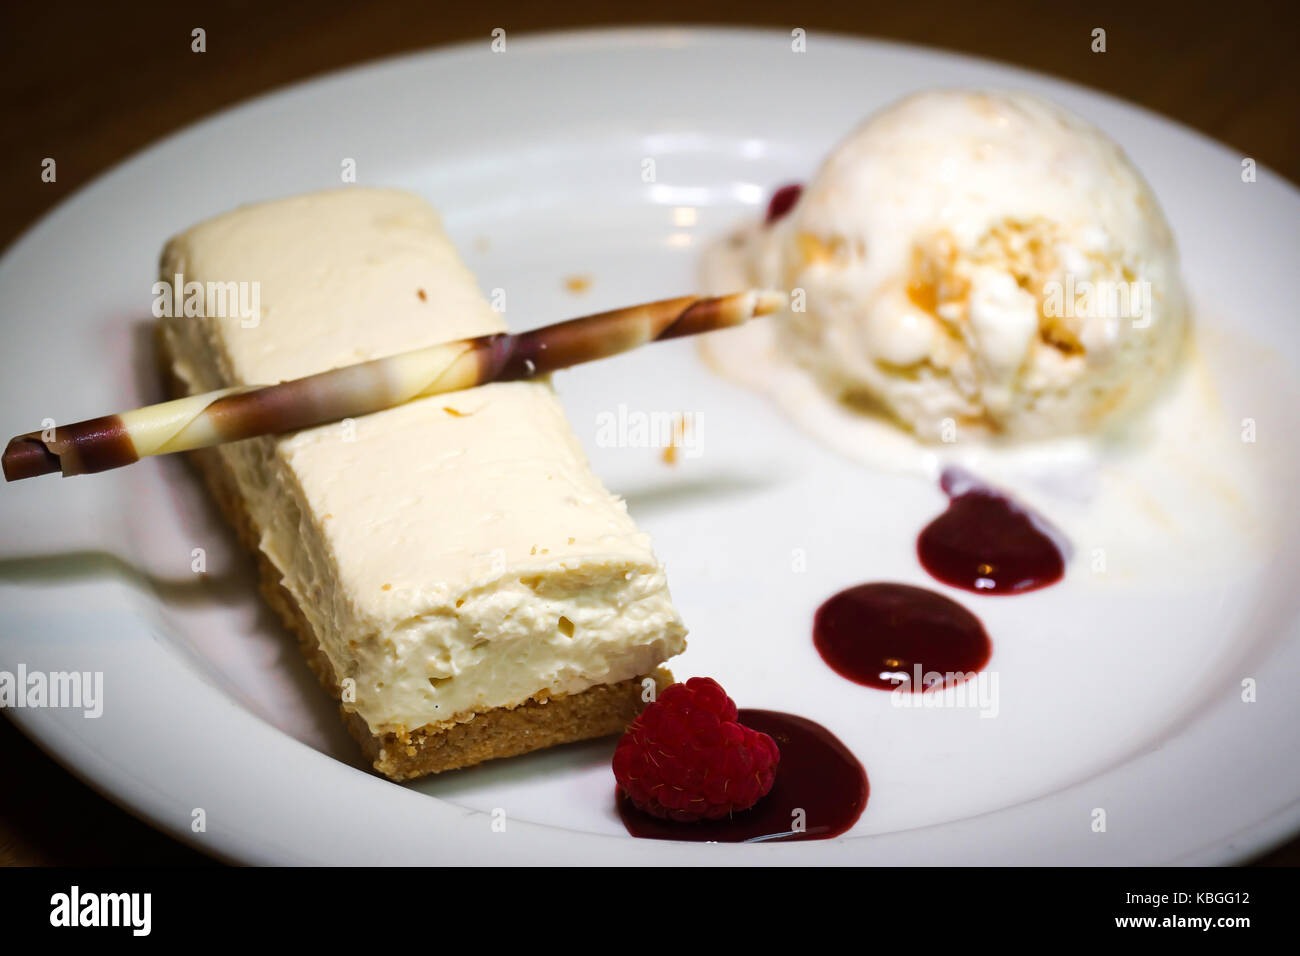 A white chocolate cheesecake paired with a vanilla honeycomb ice cream and a rasberry coulis - Stock Image